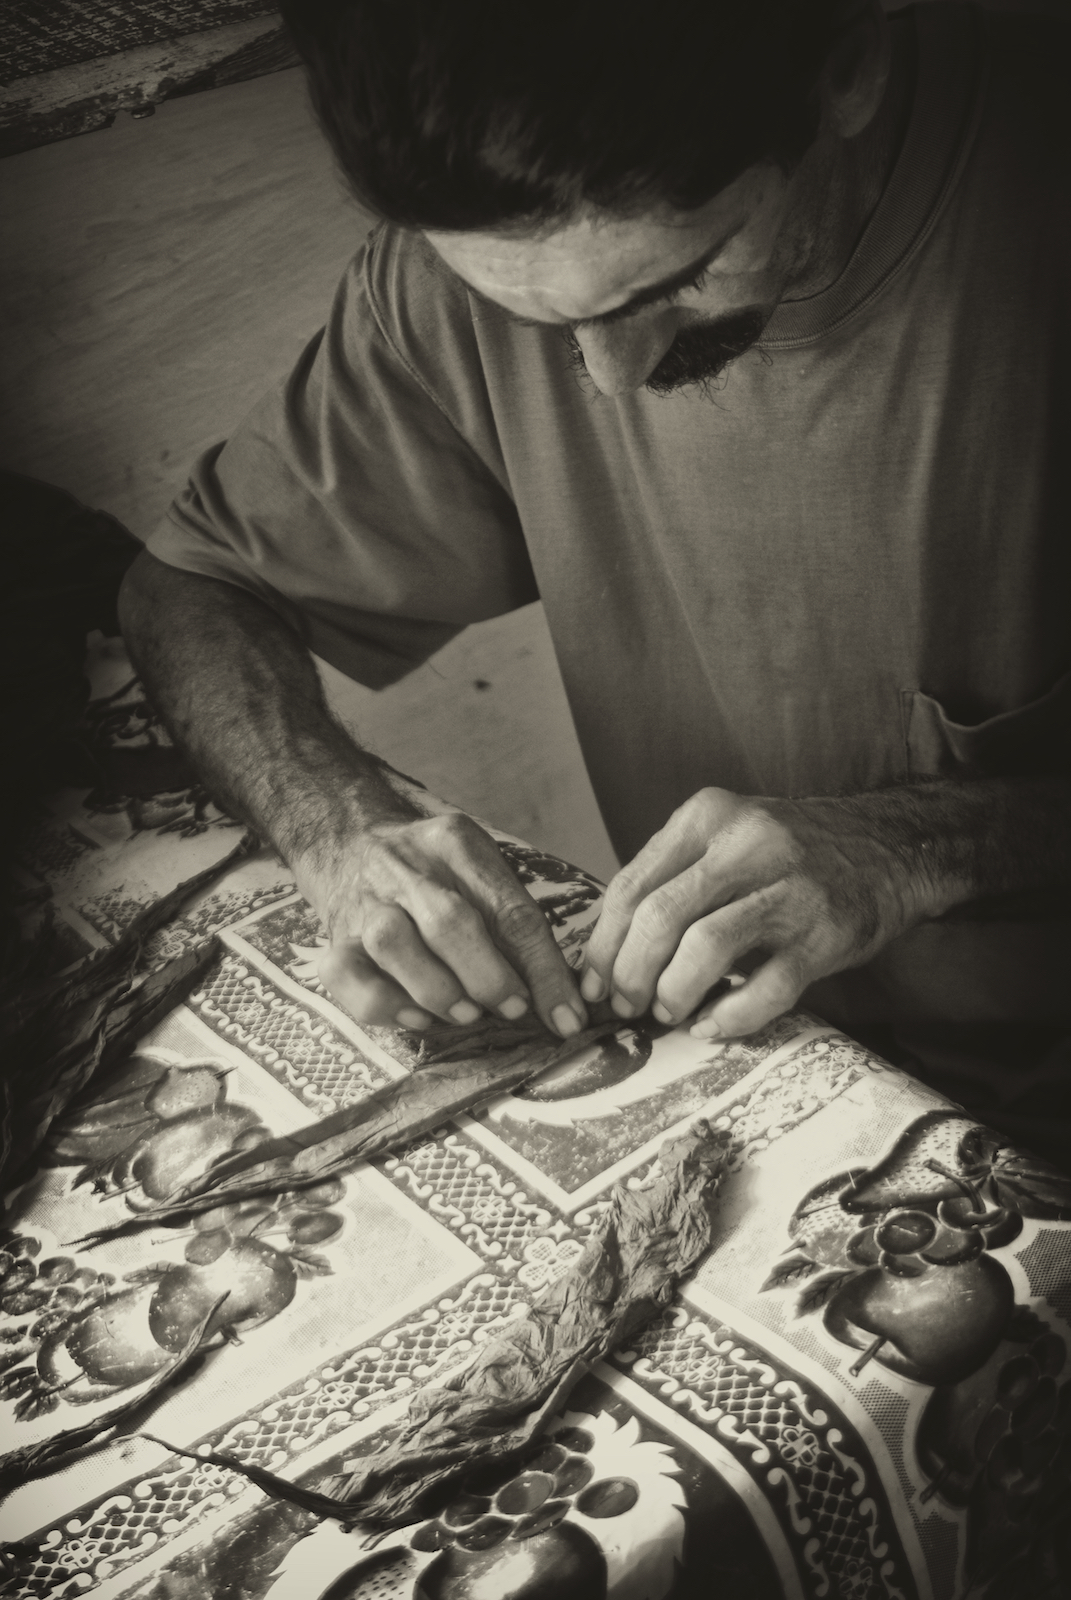 A tobacco farmer in Vinales, Cuba, rolls a cigar.  Image by New Orleans based travel photographer, Marc Pagani